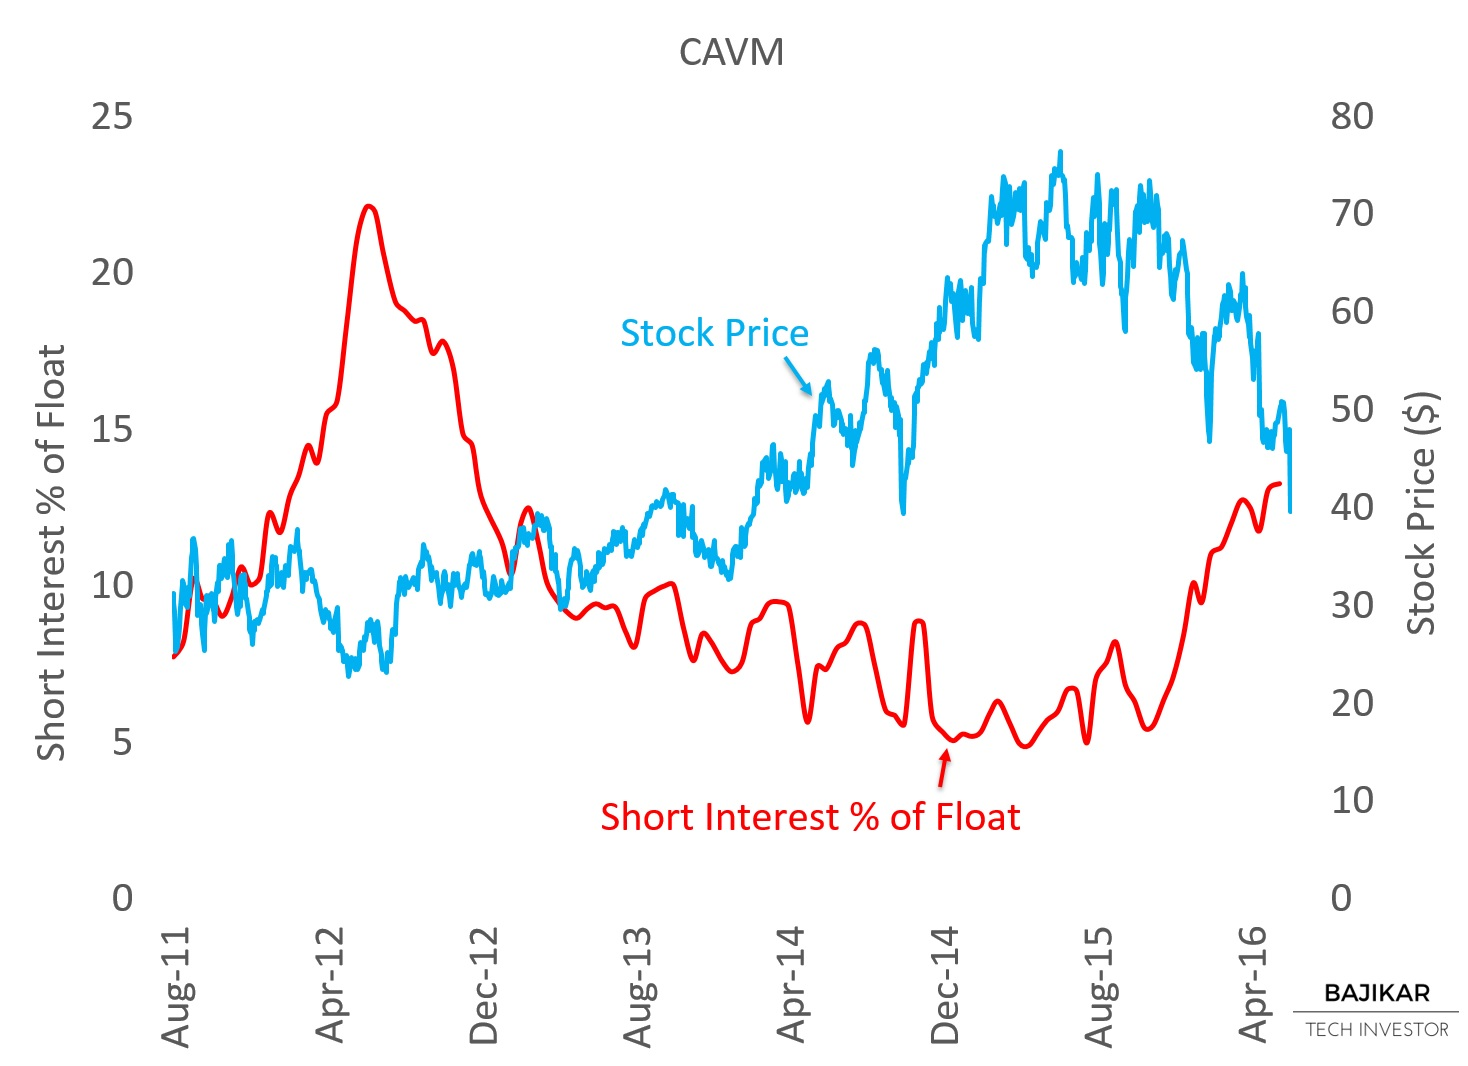 CAVM Short Interest